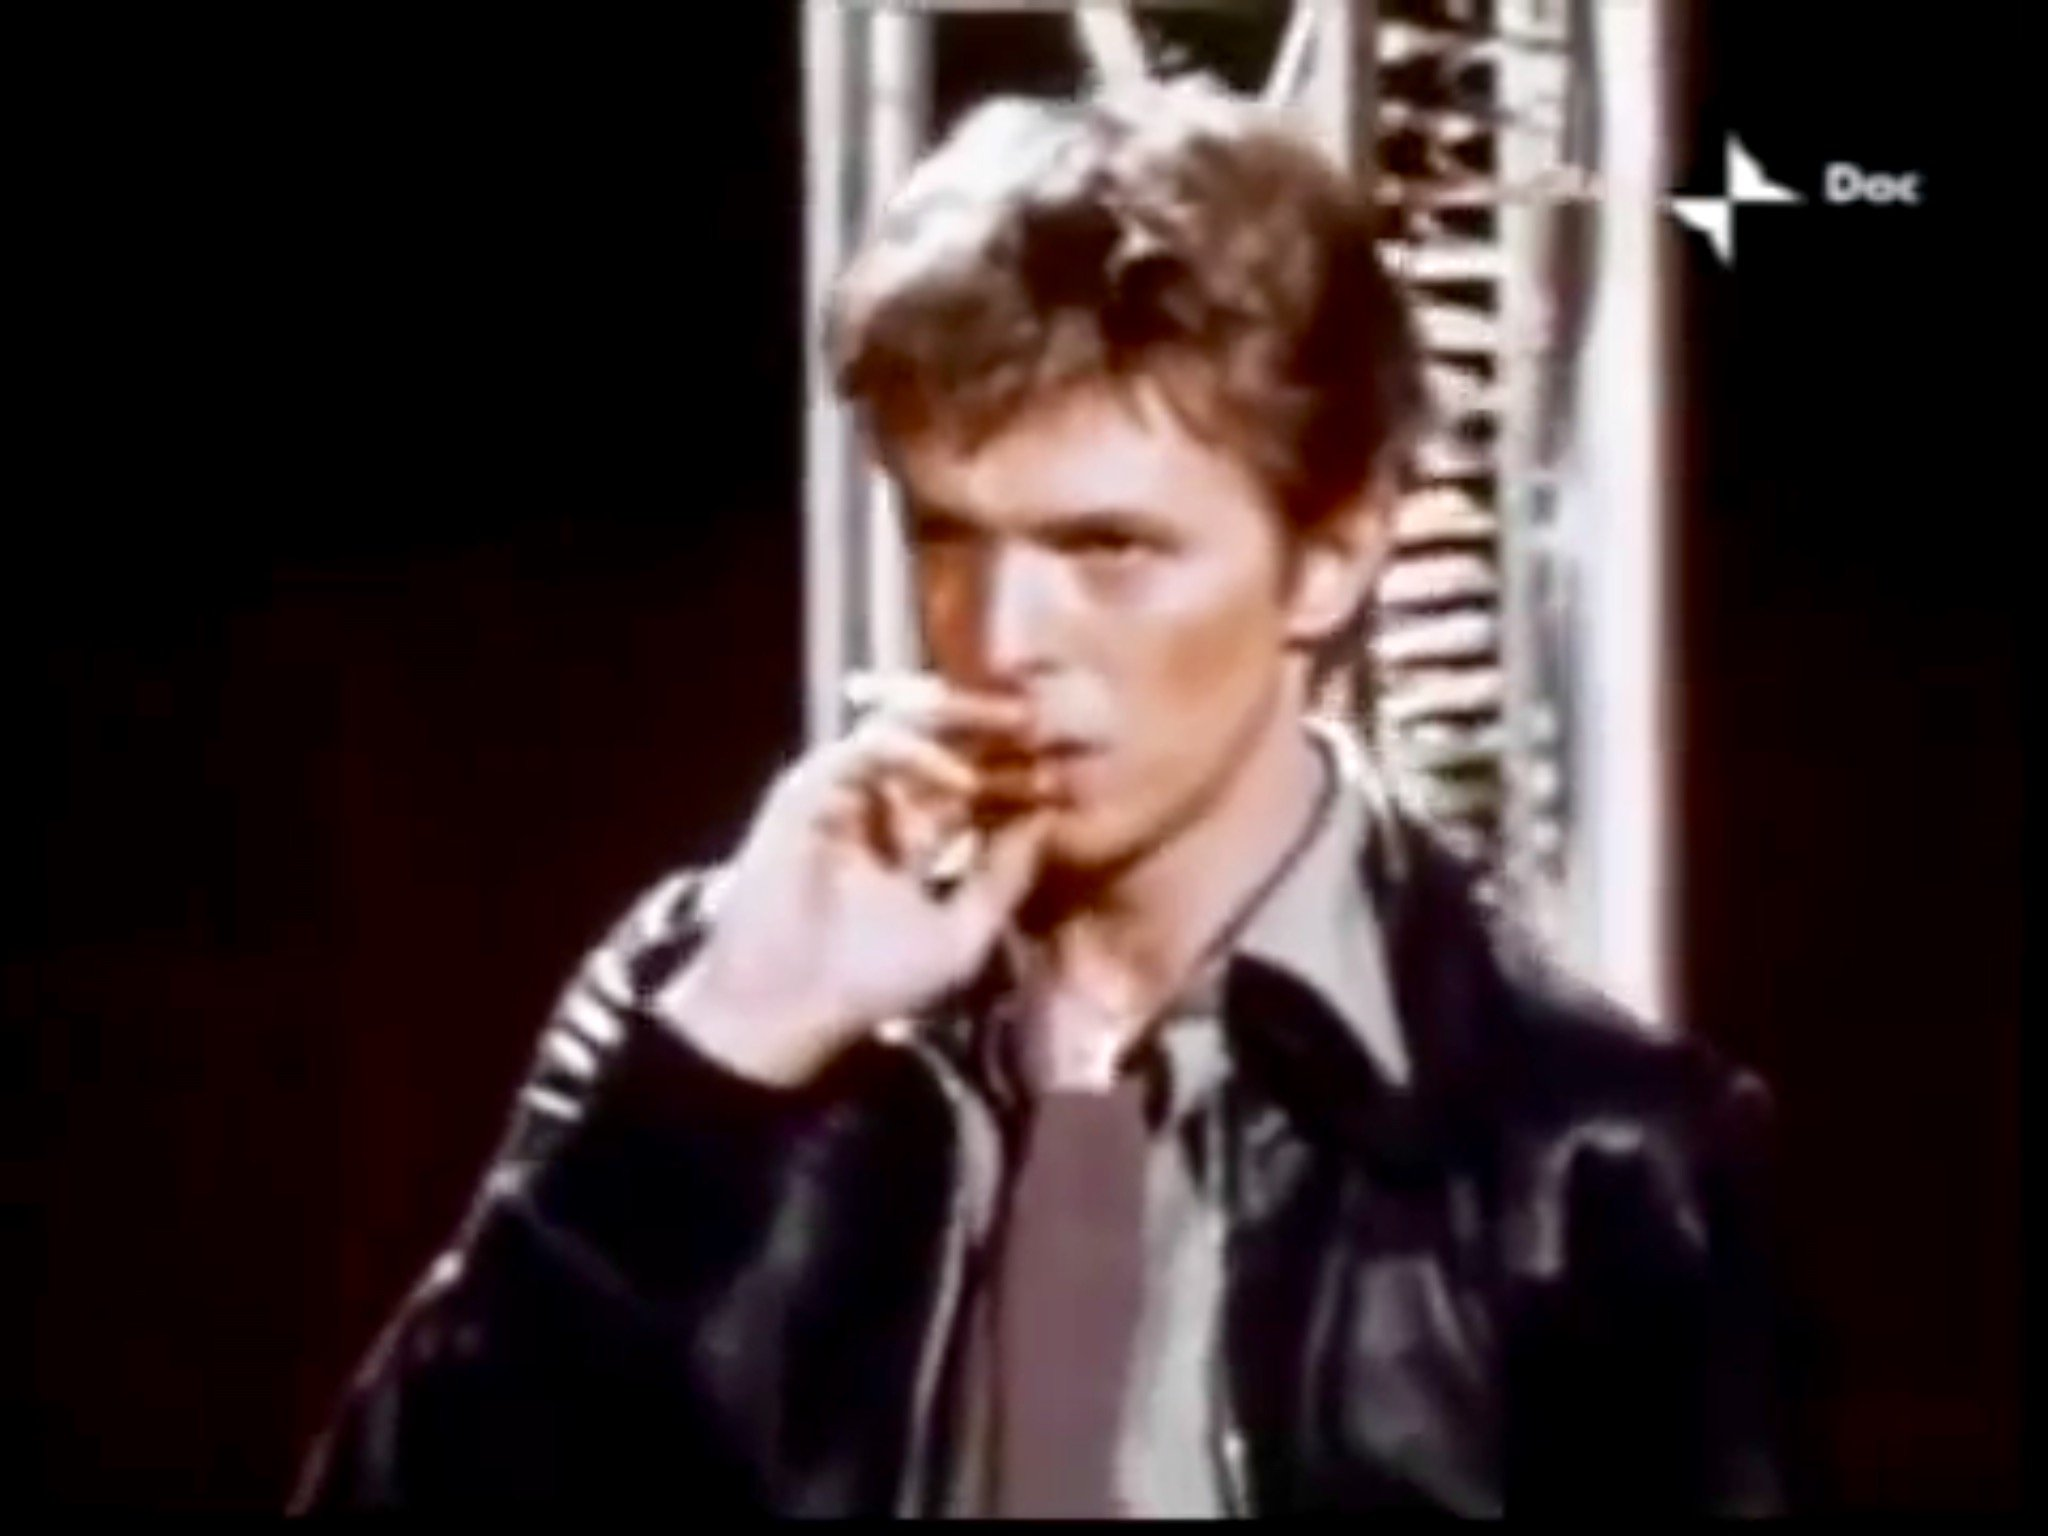 Heroes italian tv 1977 re edit by nacho david for 1980 floor show david bowie